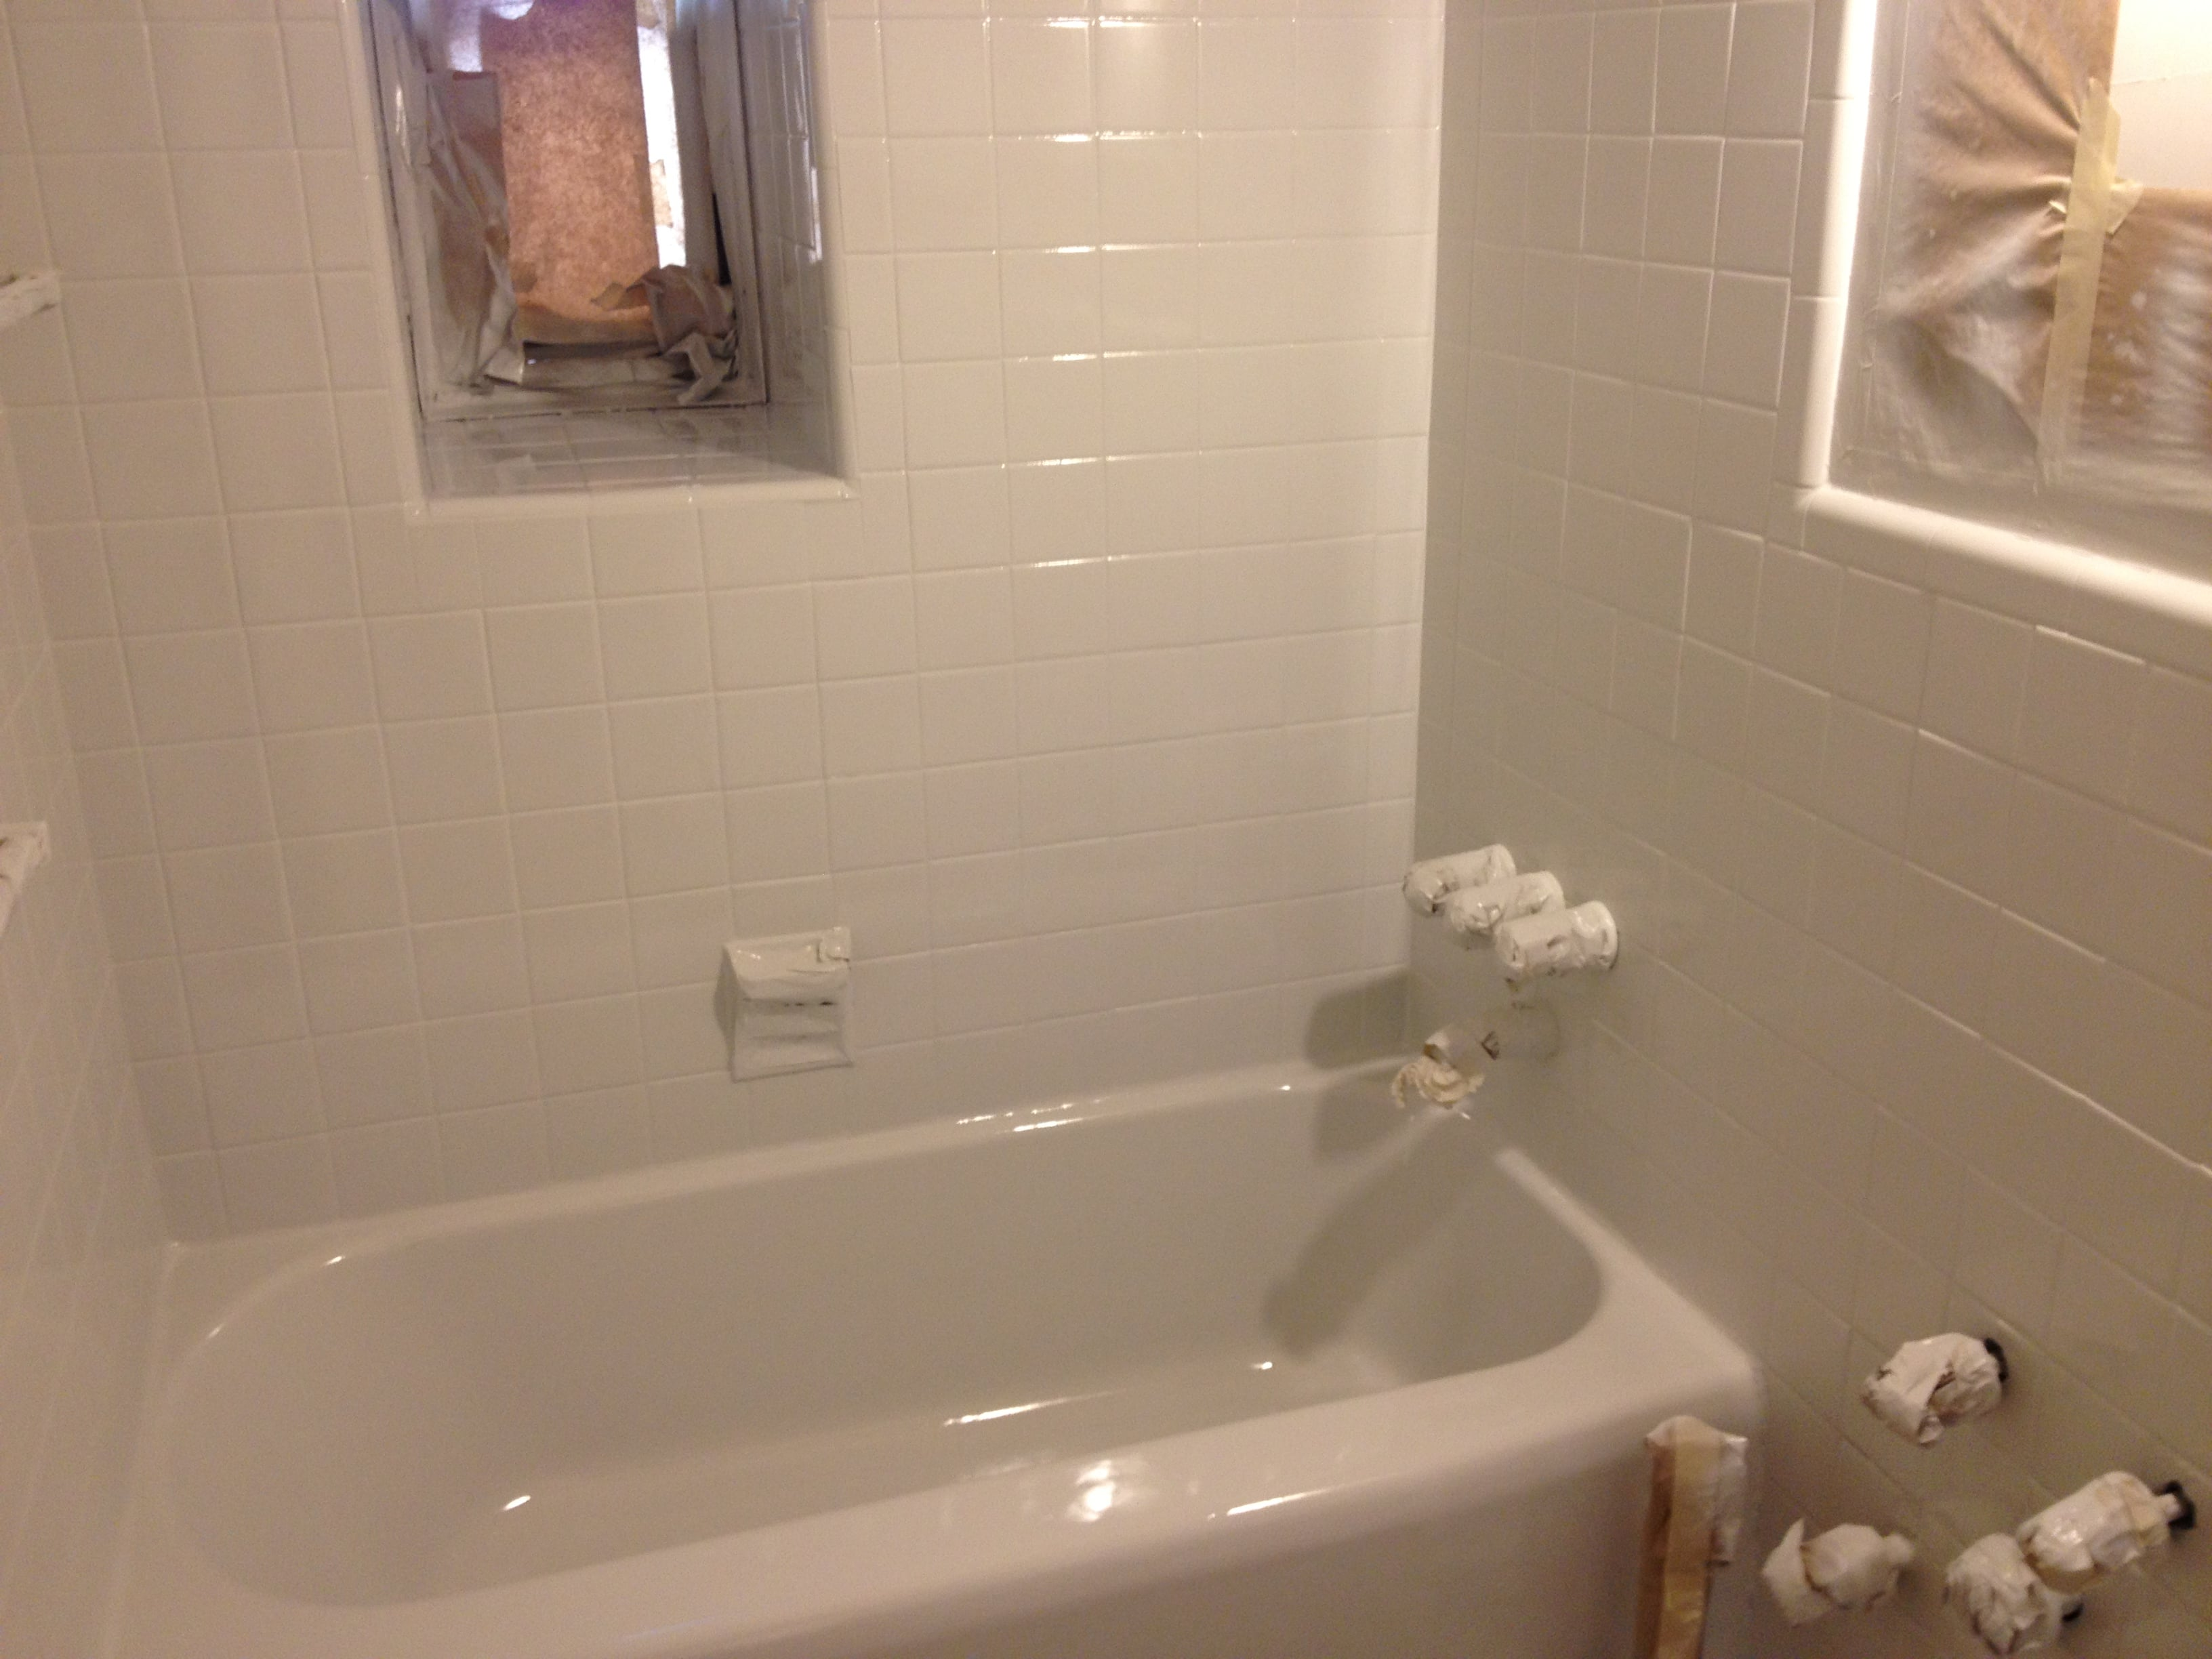 Tub And Tile Reglazing Process West Michigan | TubKote